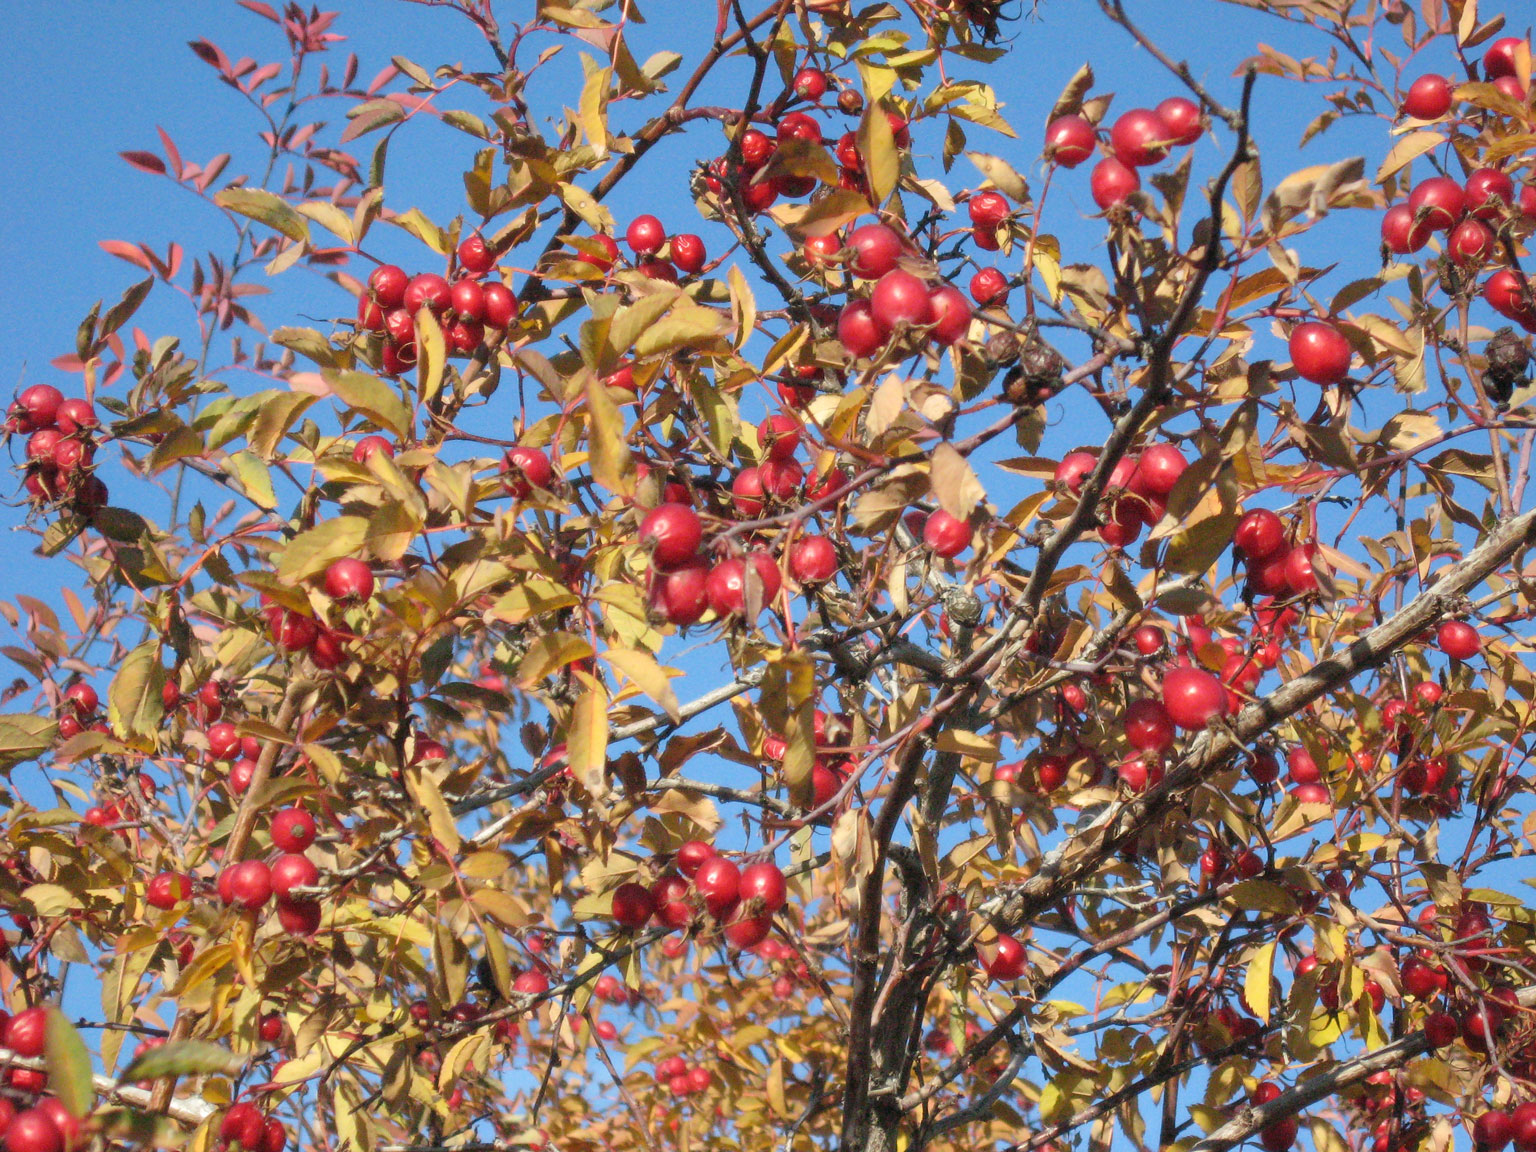 Abundant rose hips in the naturalized area Oct 2018 MK